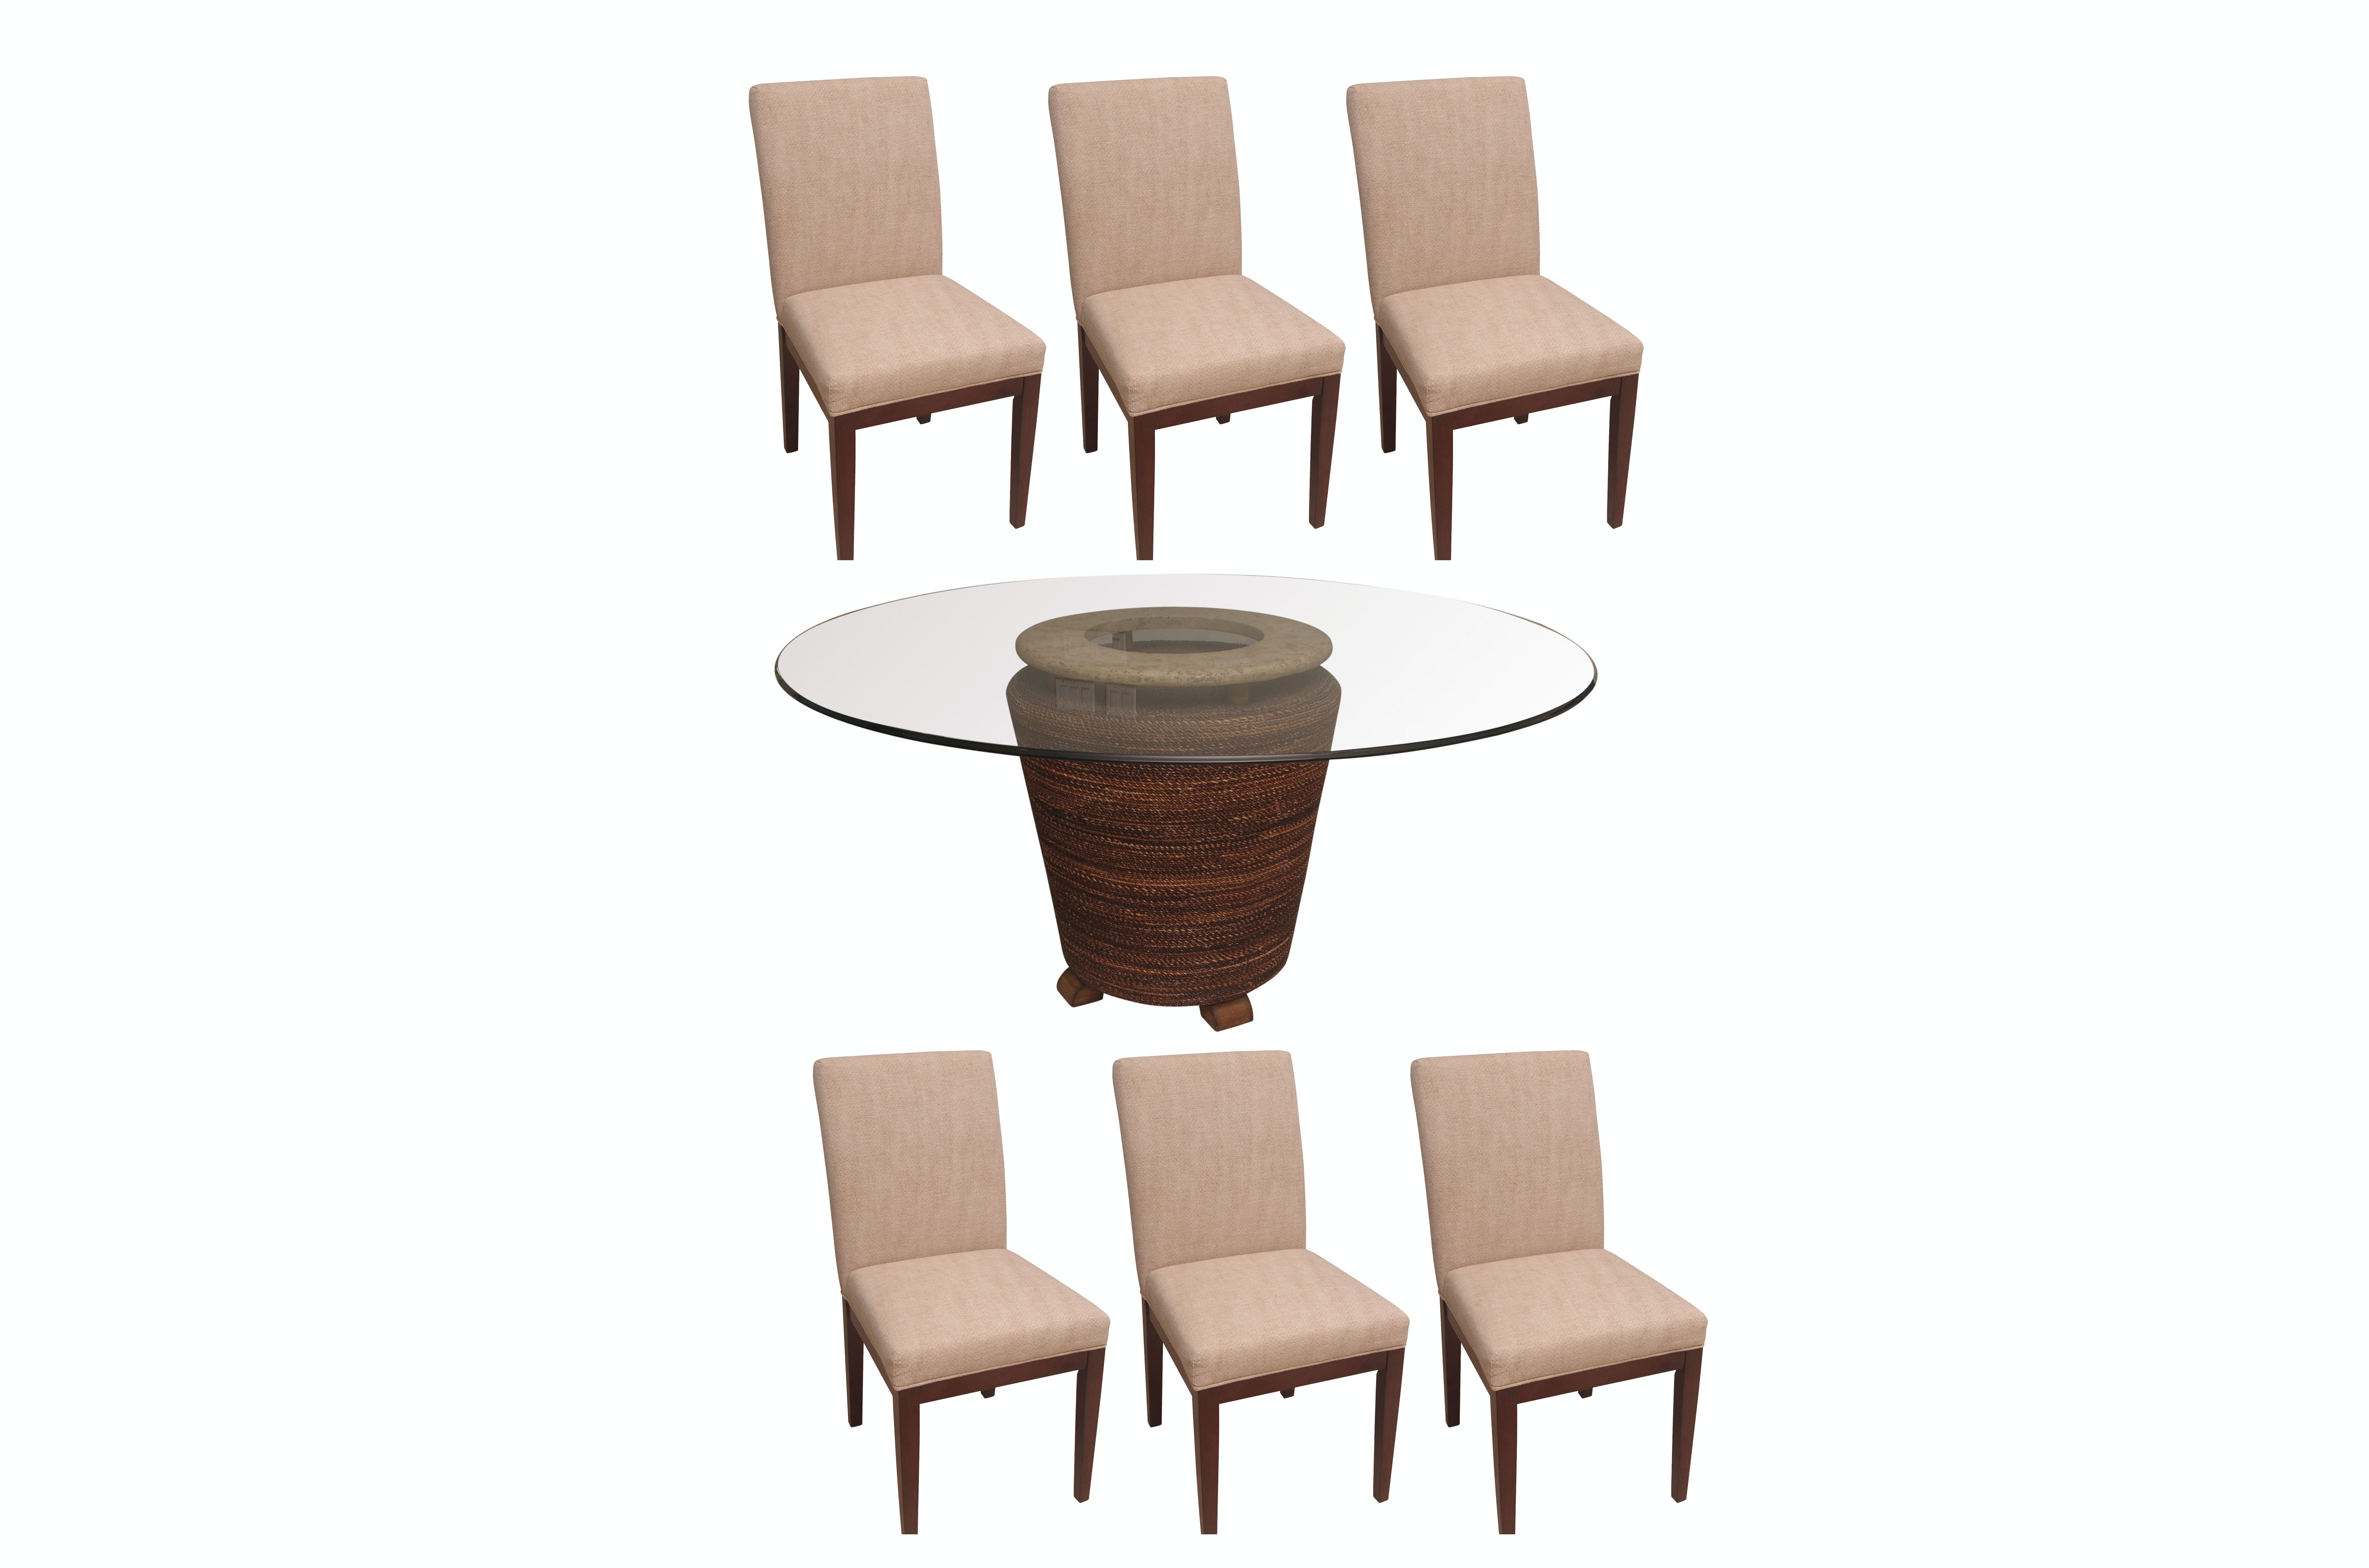 Glass Top Pedestal Dining Table with Chairs